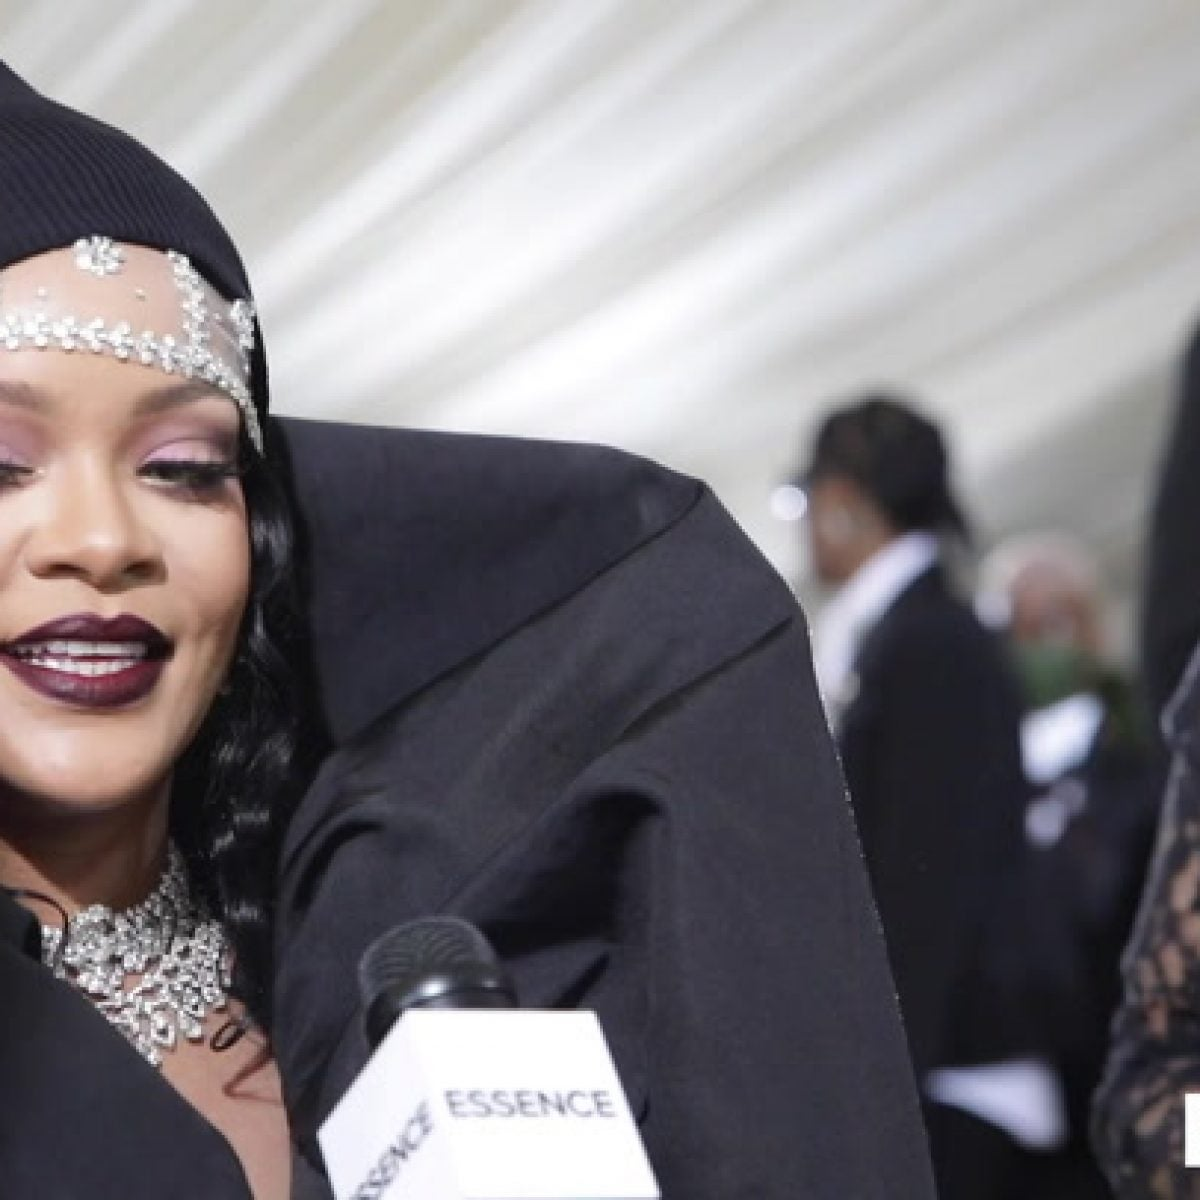 Rihanna Shares Details About Her MET Gala Look